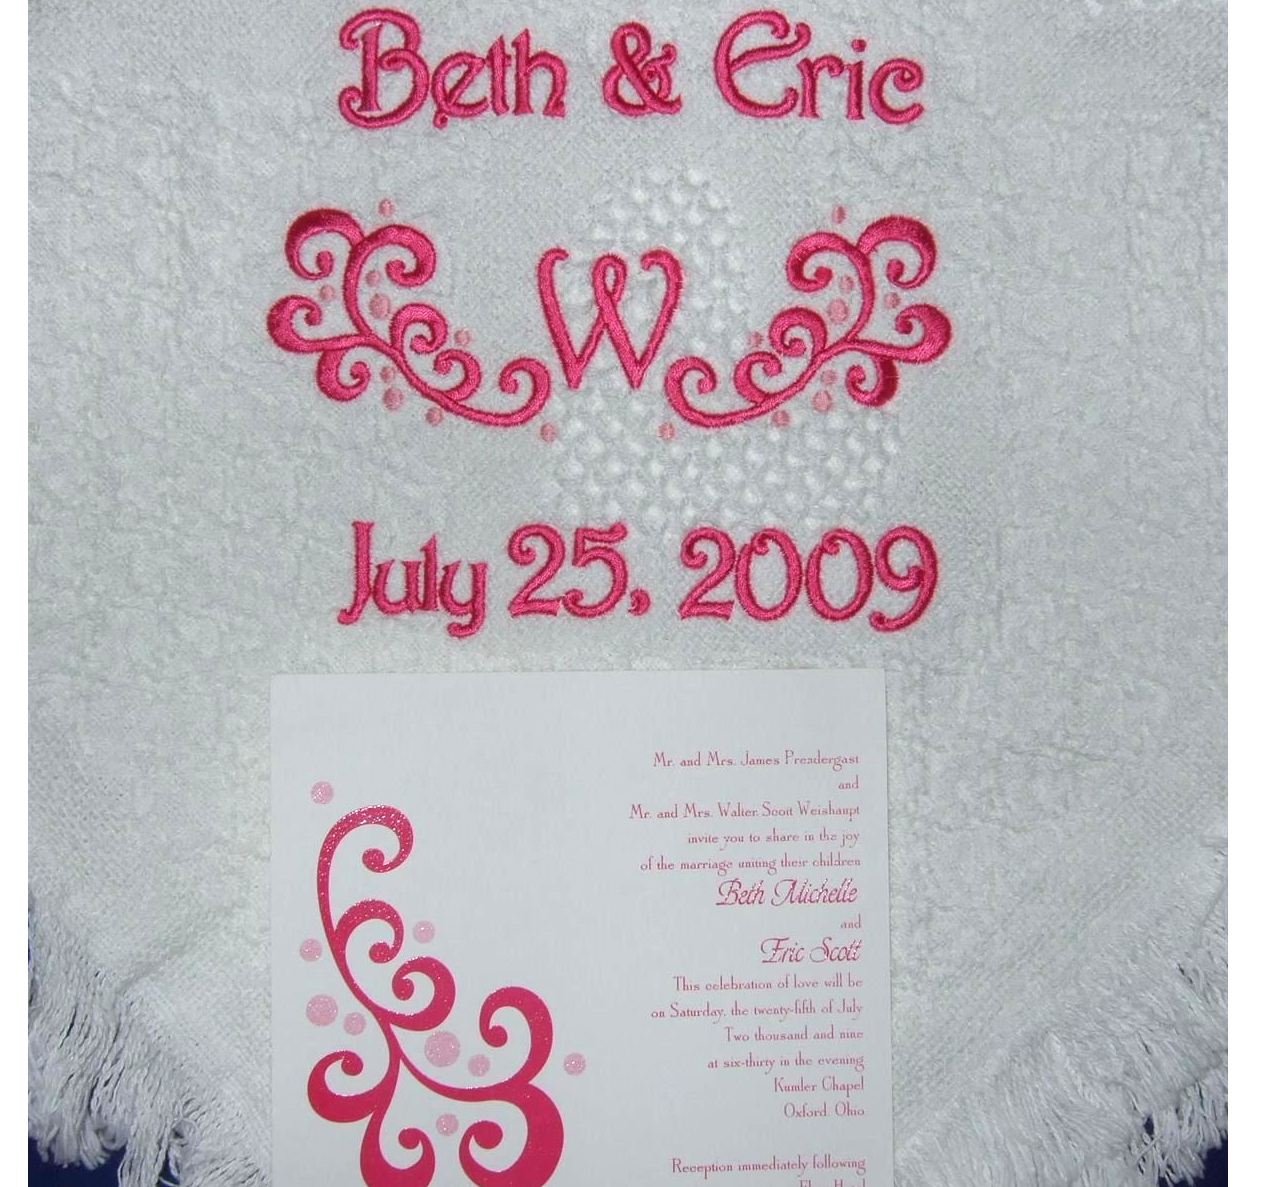 Woven heart wedding blanket with scroll and dots from wedding invitation